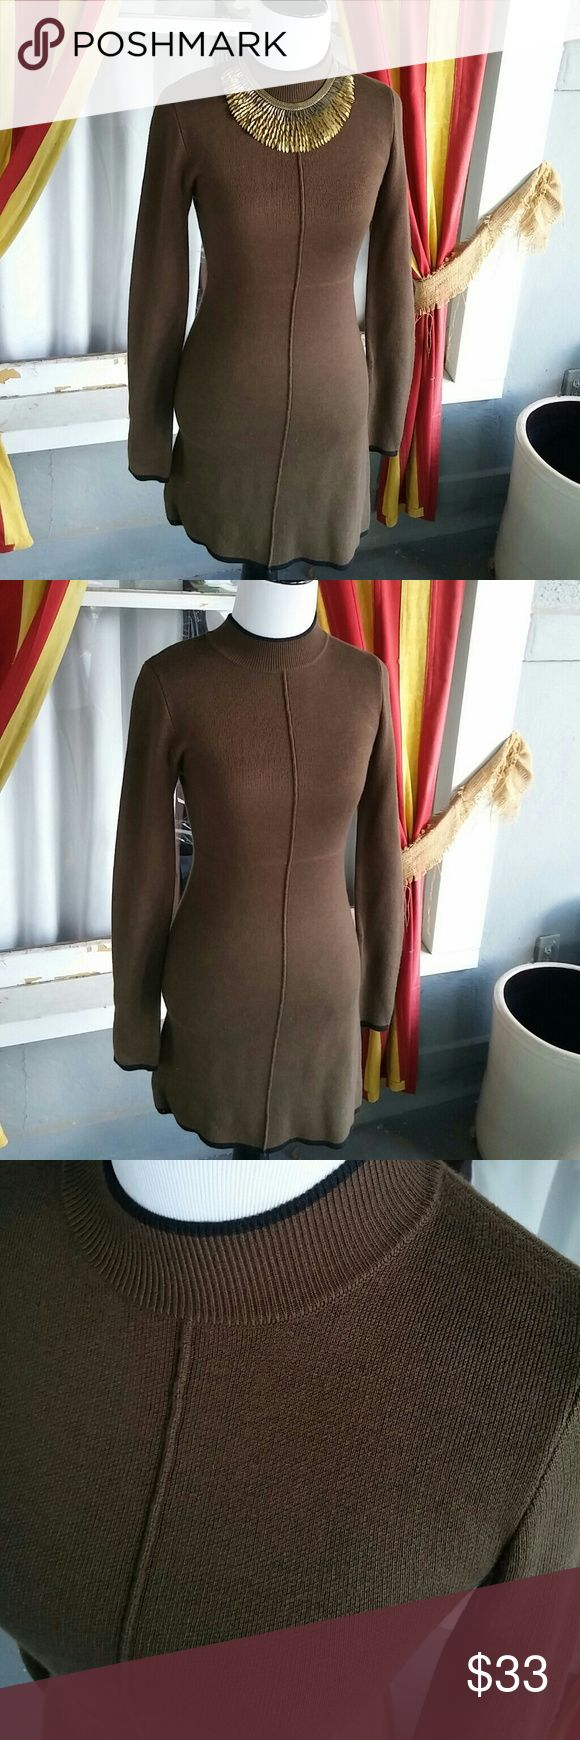 Romeo + Juliet Couture sweater dress This is a beautiful Romeo + Juliet Couture olive green sweater dress with black trim size small military Romeo & Juliet Couture Dresses Long Sleeve